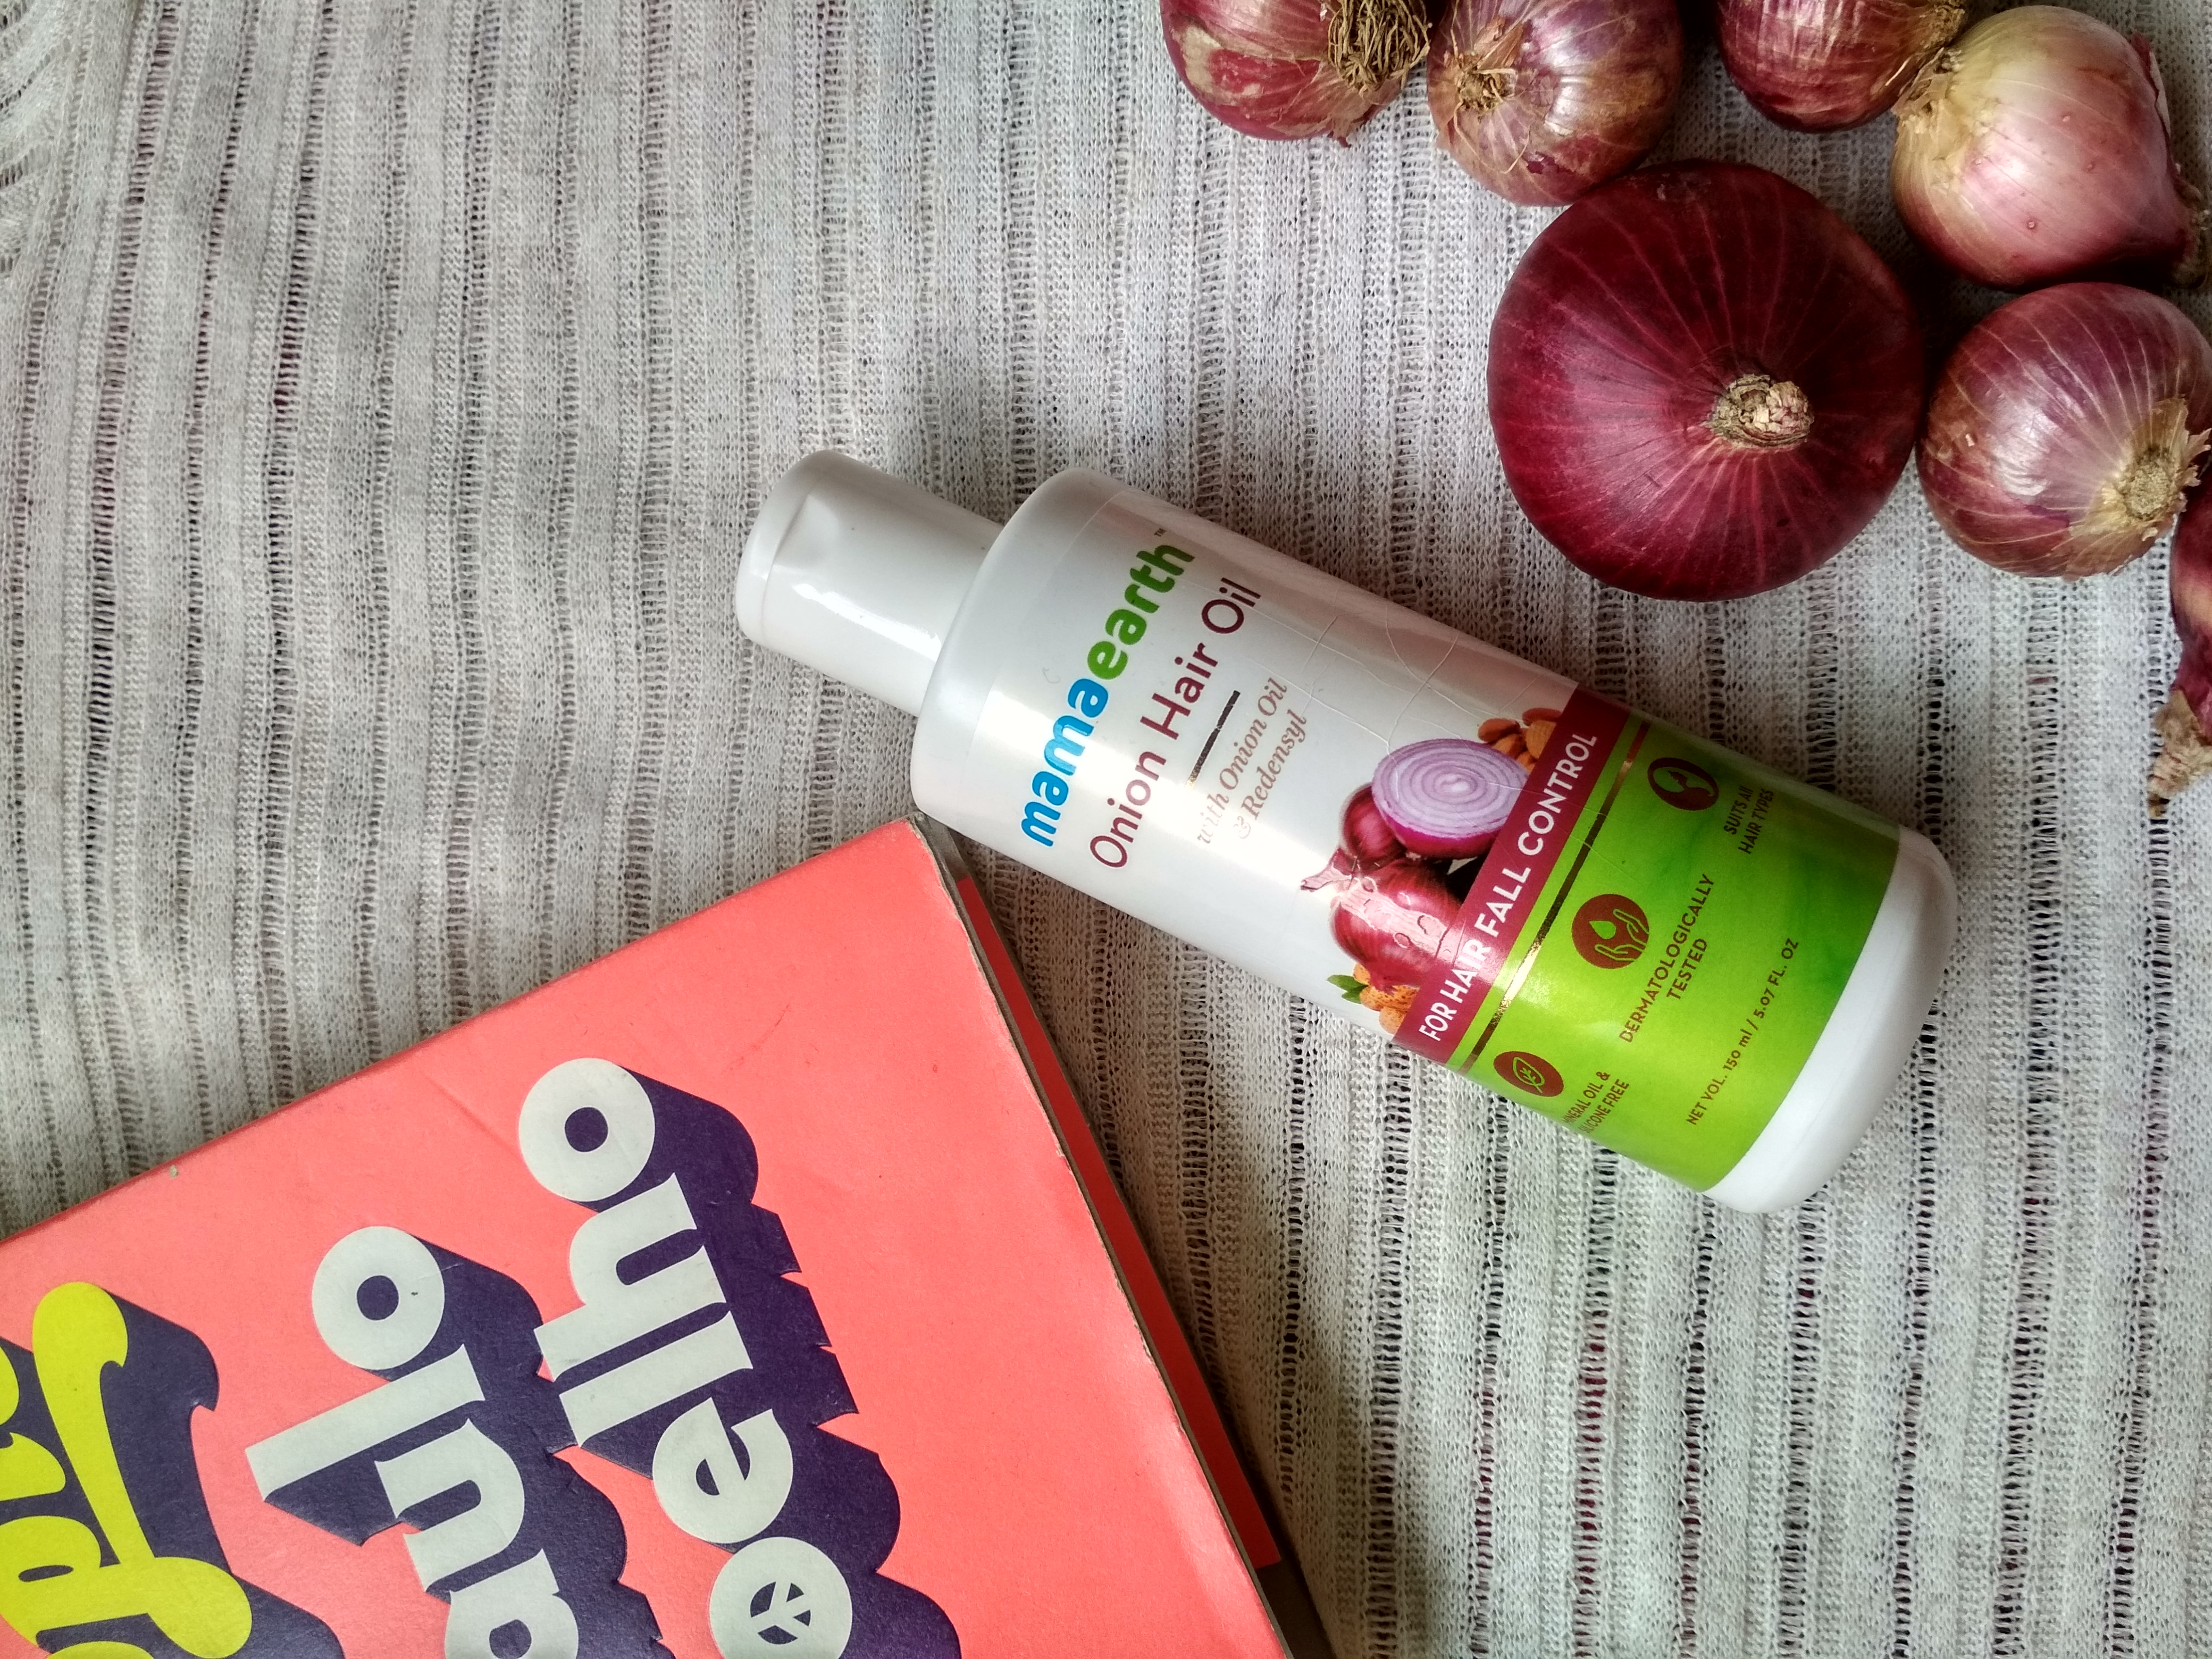 MamaEarth Onion Hair Oil-One stop solution for all hair problems.-By geetanjali_bharali-2